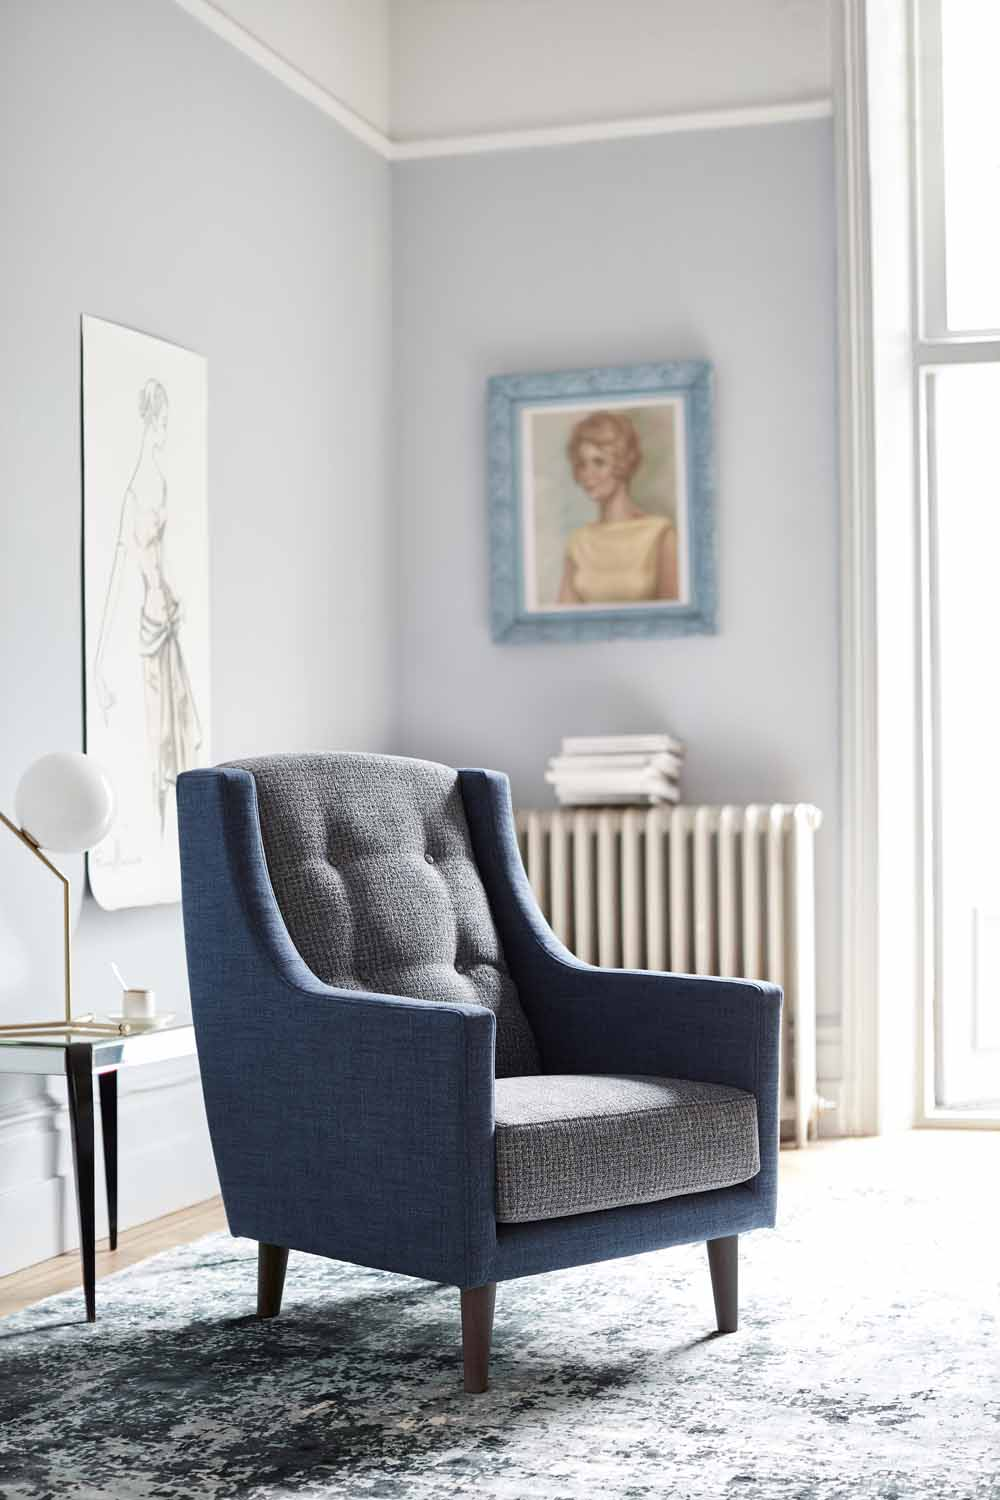 Blue Hepburn chair by G Plan | Design Hunter